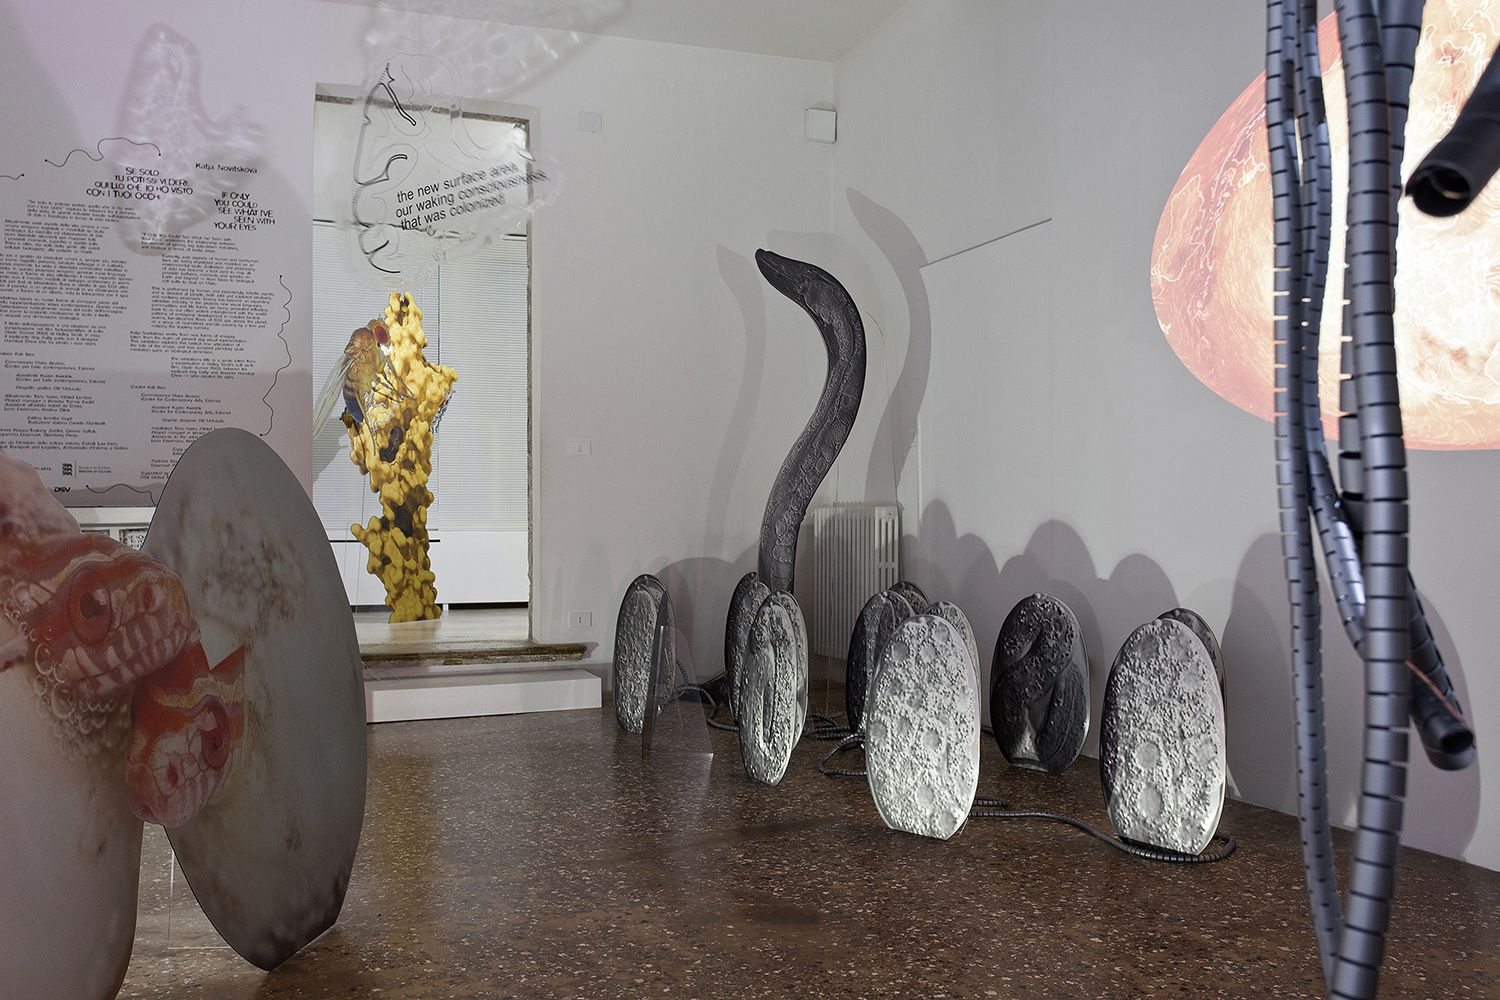 Katja Novitskova, Installation view, If Only You Could See What I've Seen With Your Eyes, 57th Venice Biennale, Estonian Pavilion, Venice, 2017